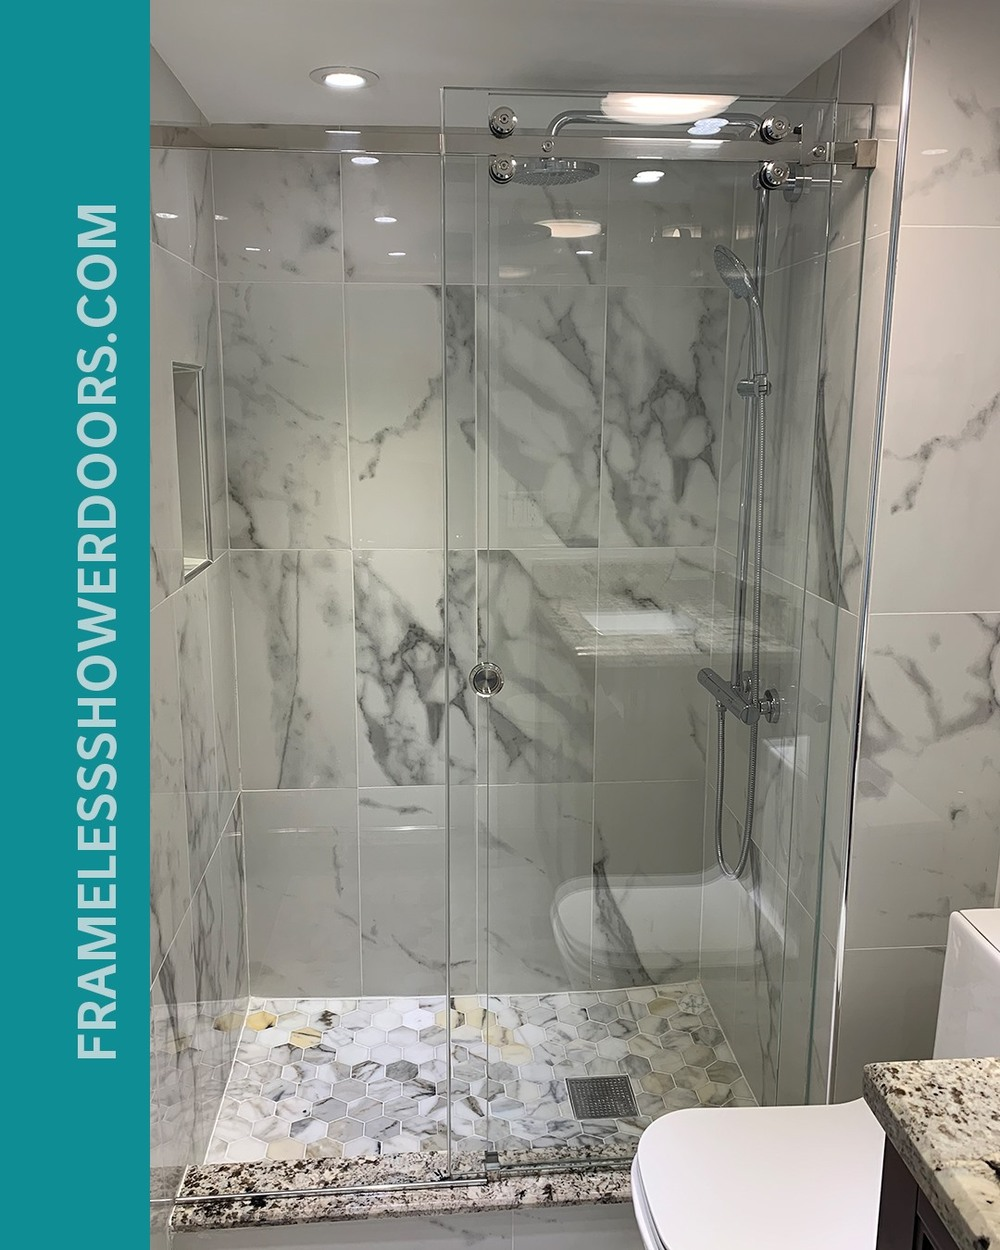 The Original Frameless Shower Doors Now Installing Sliding Shower Doors in Florida